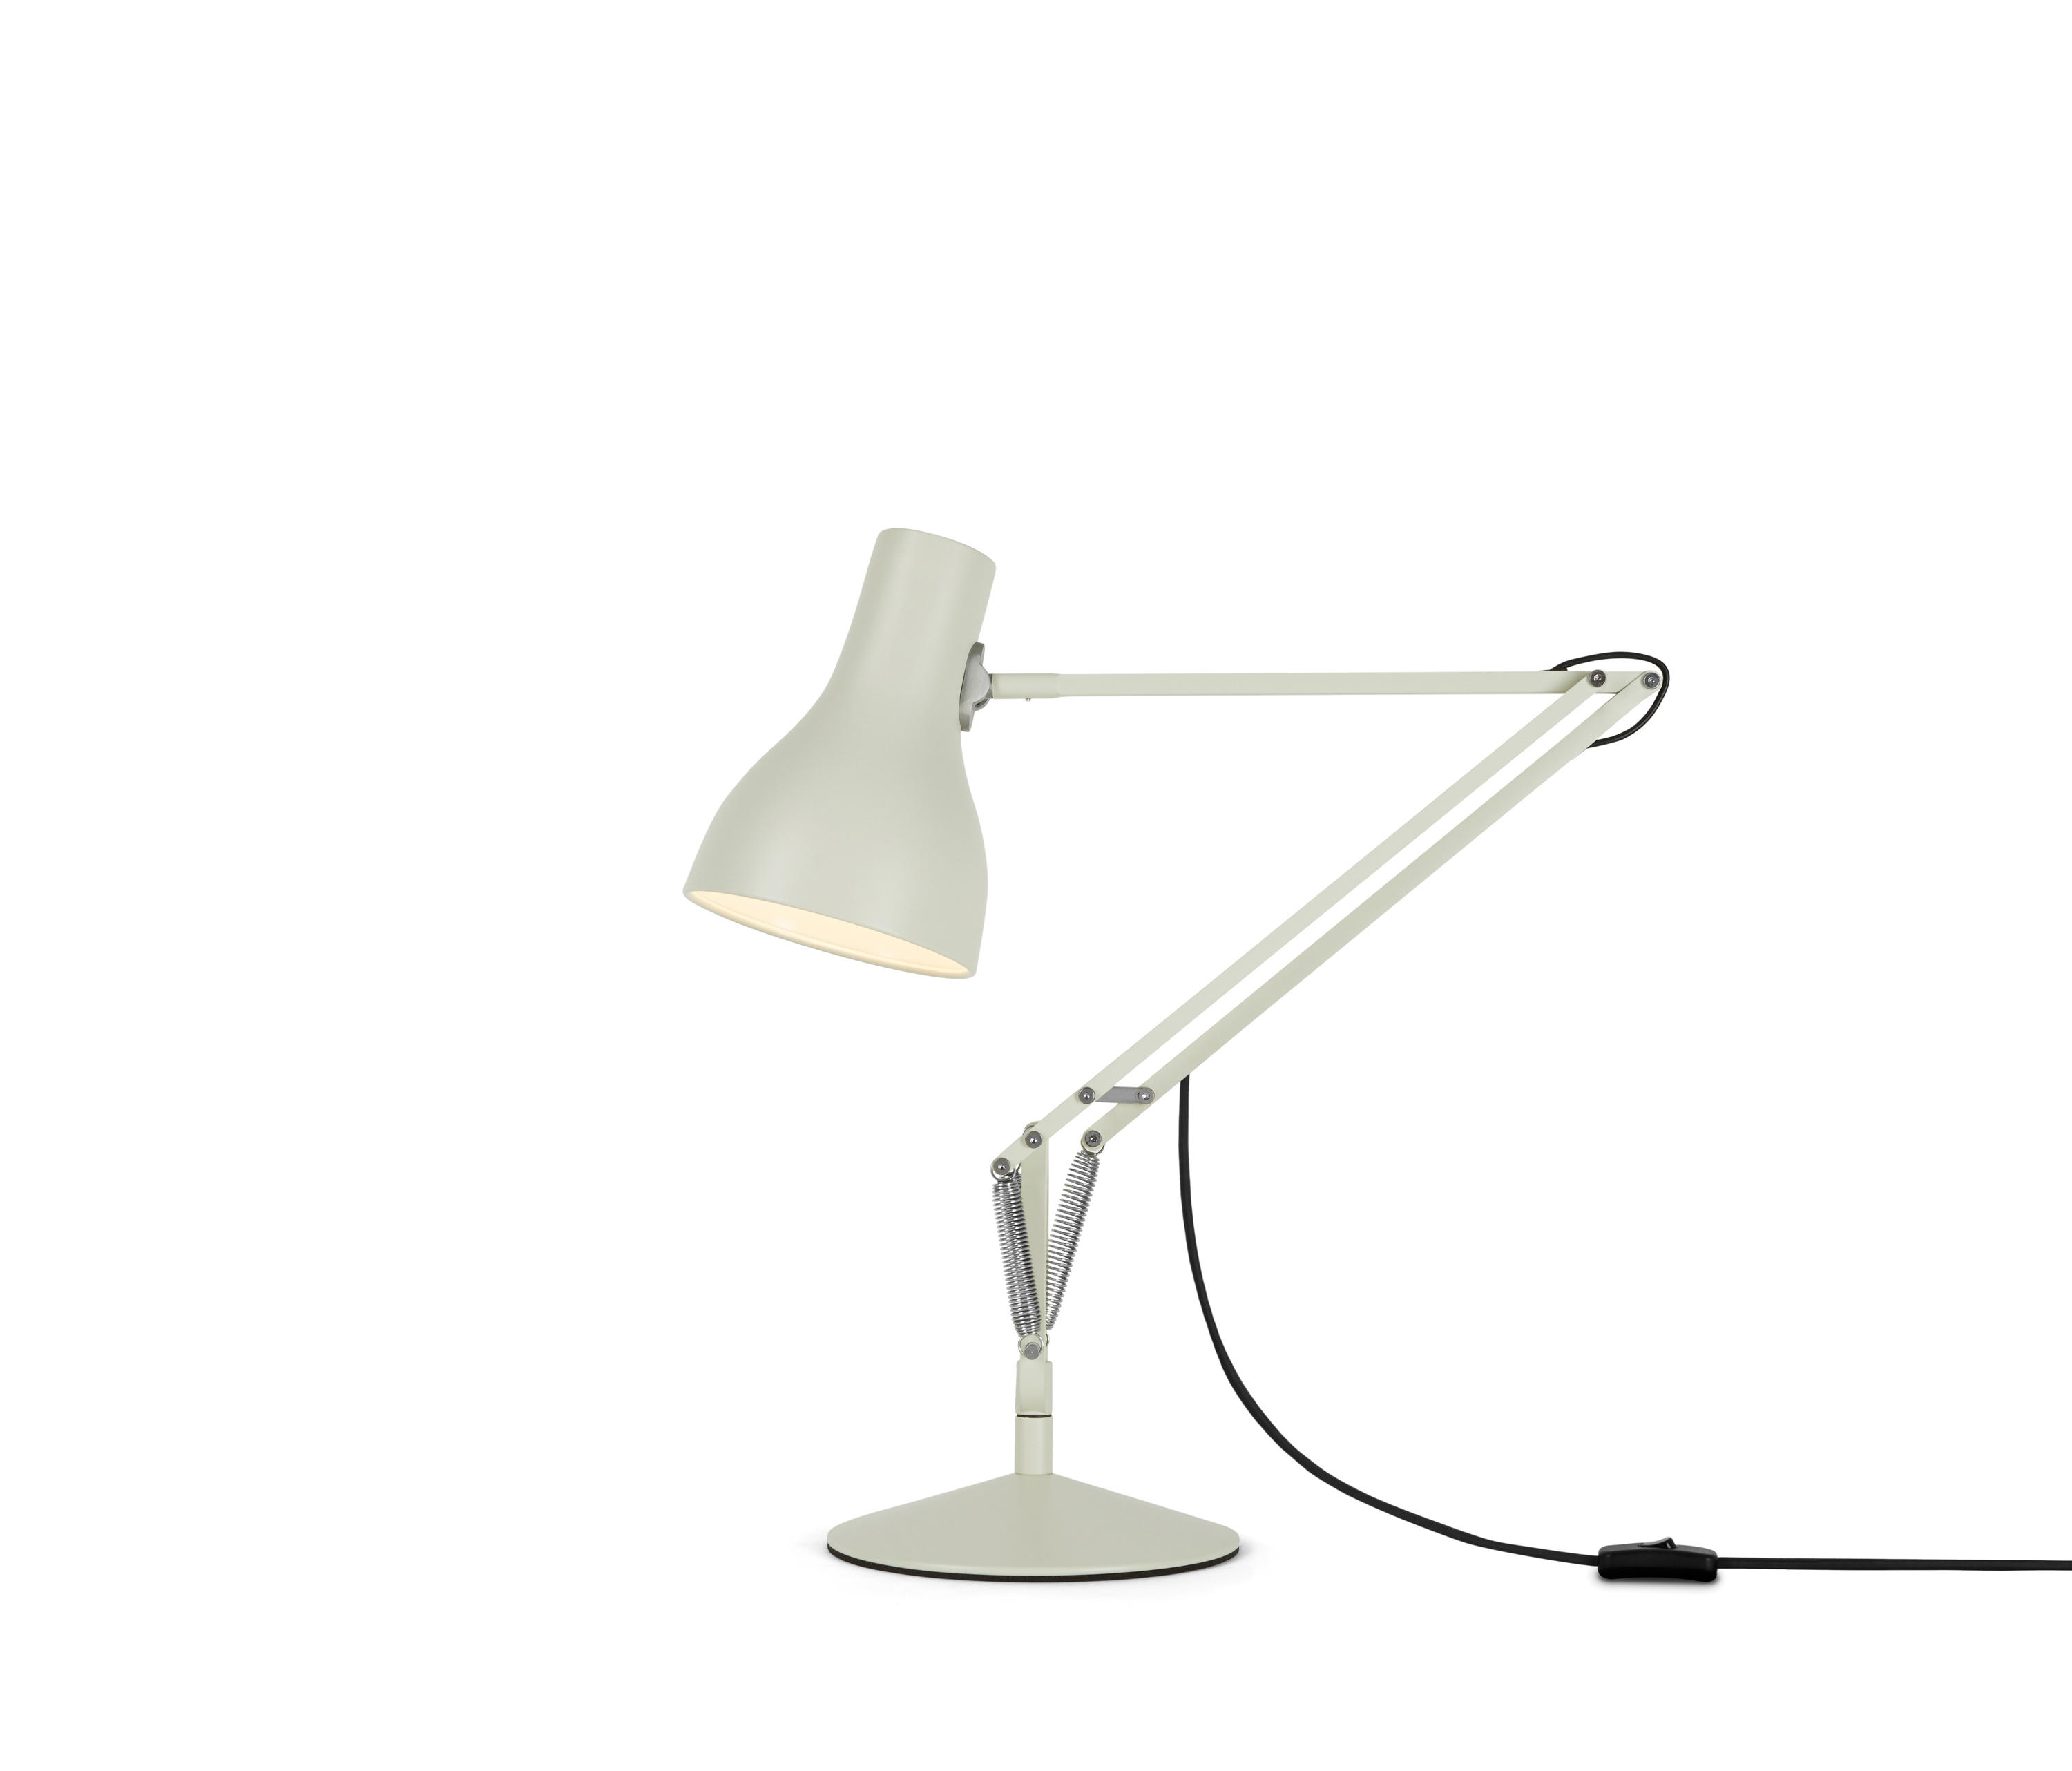 anglepoise original table heal s lamp mini